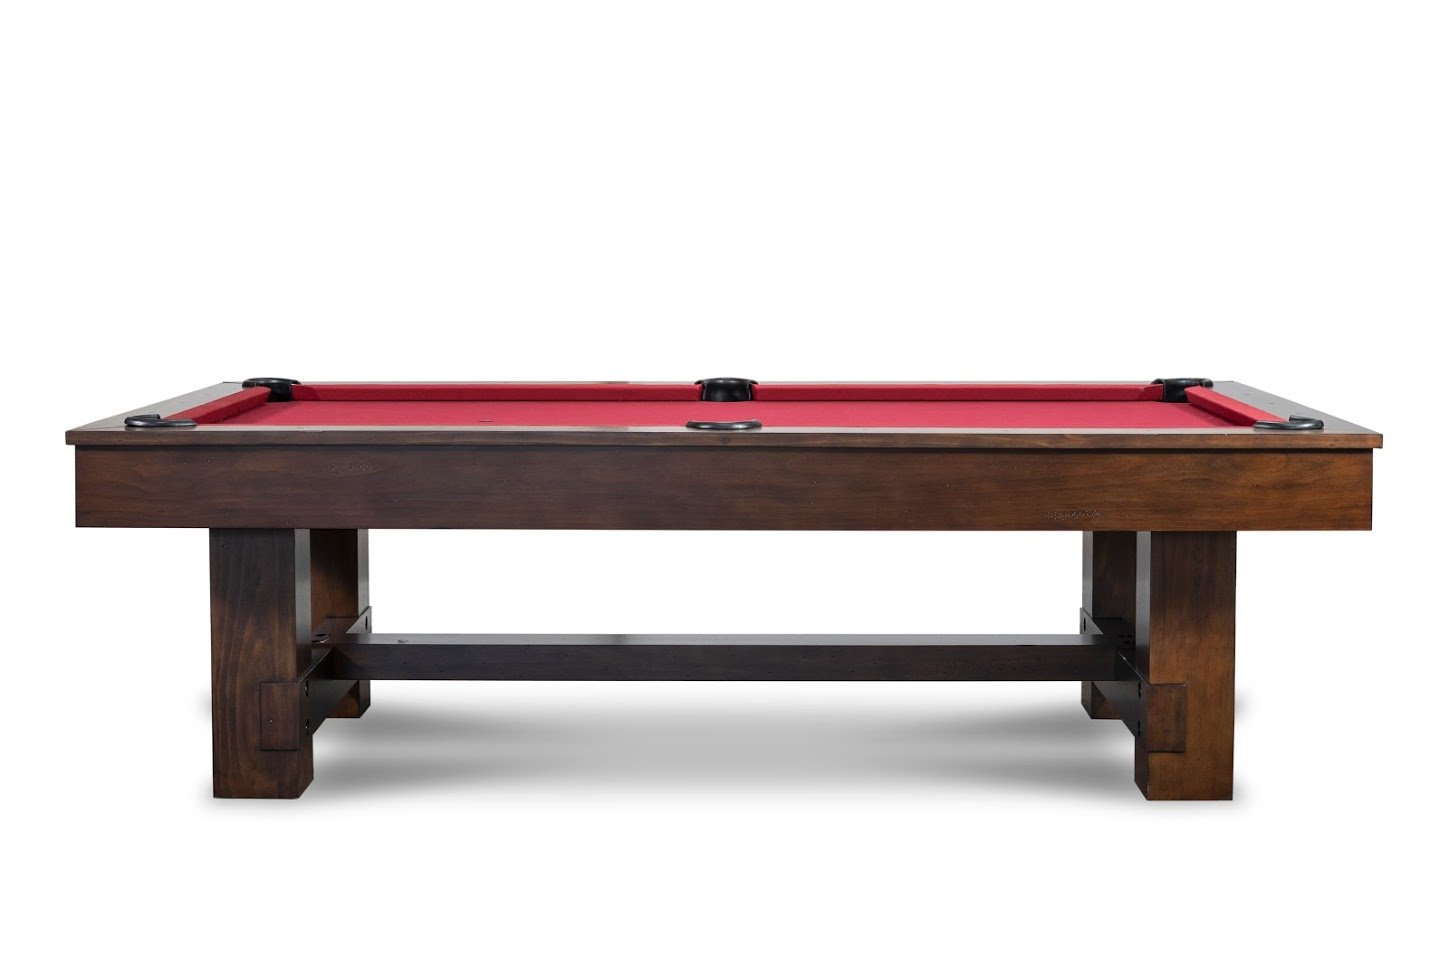 Dakota Slate Pool Table in Sable